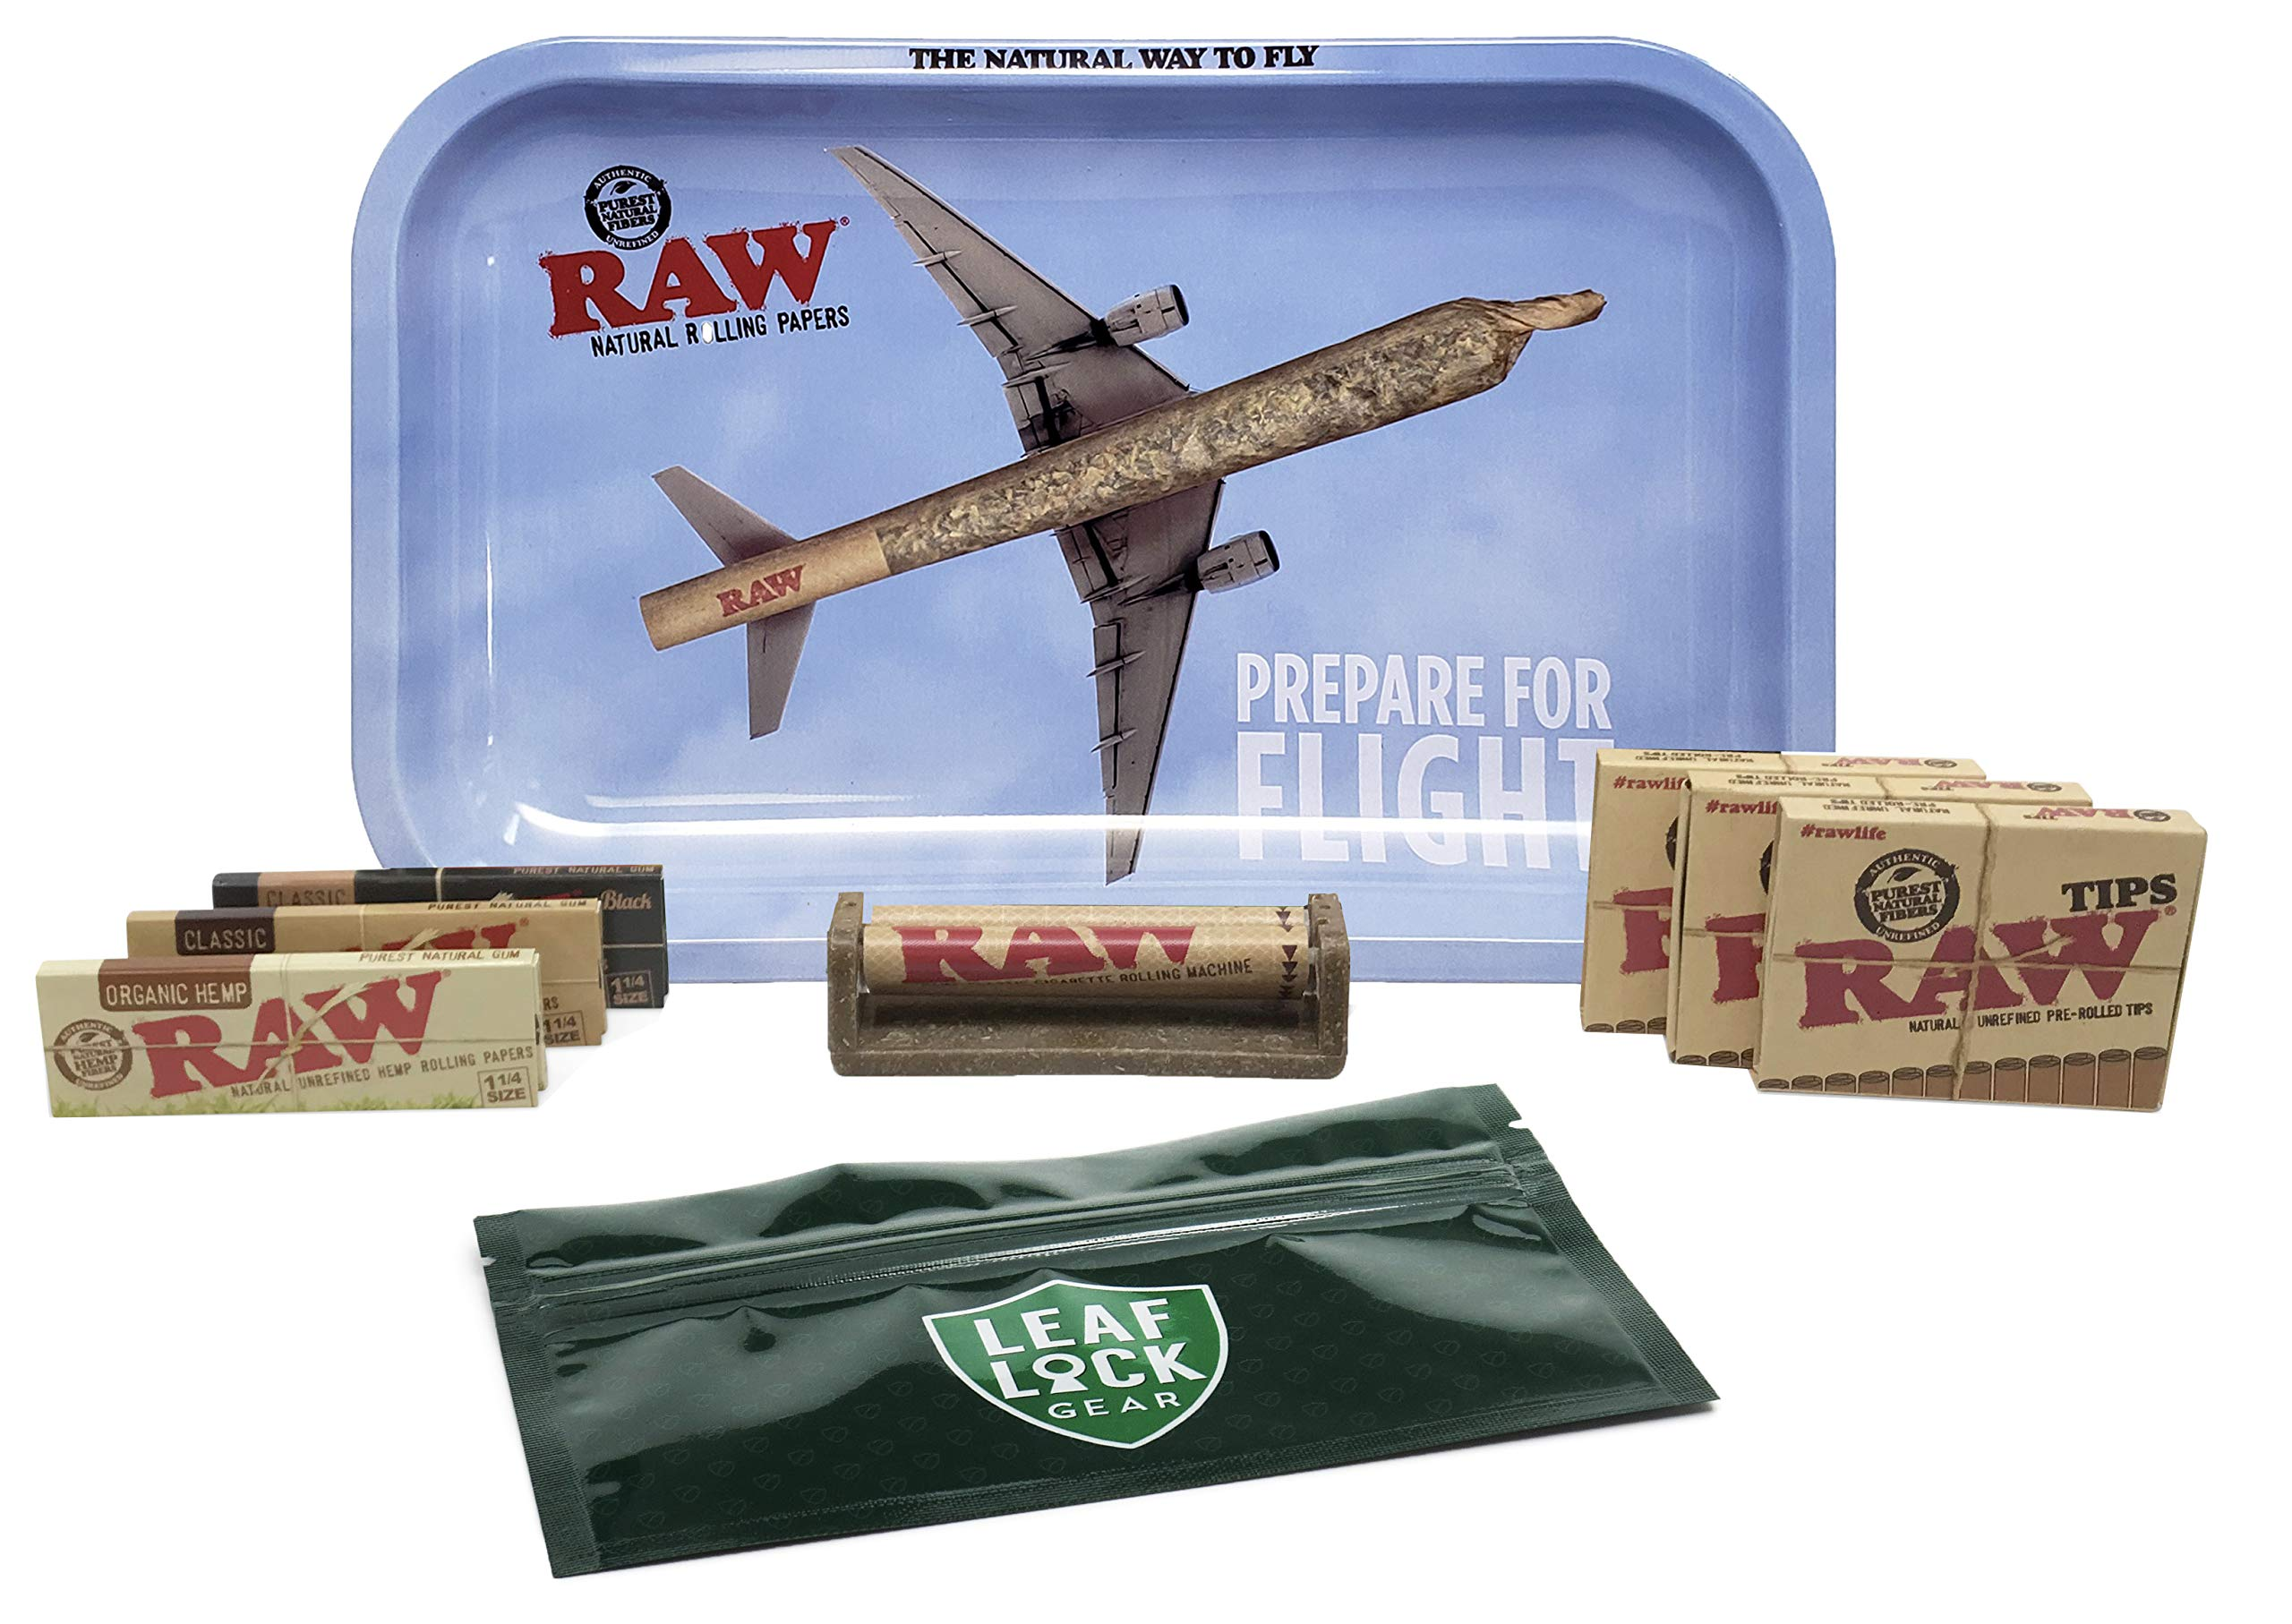 RAW Rolling Tray Small''Take Flight'', RAW 1 1/4 Rolling Papers (Classic, Black, Organic), RAW Roller, Pre Rolled Tips (3 Packs), with Leaf Lock Gear Spill Proof Bag - 9 Item Bundle